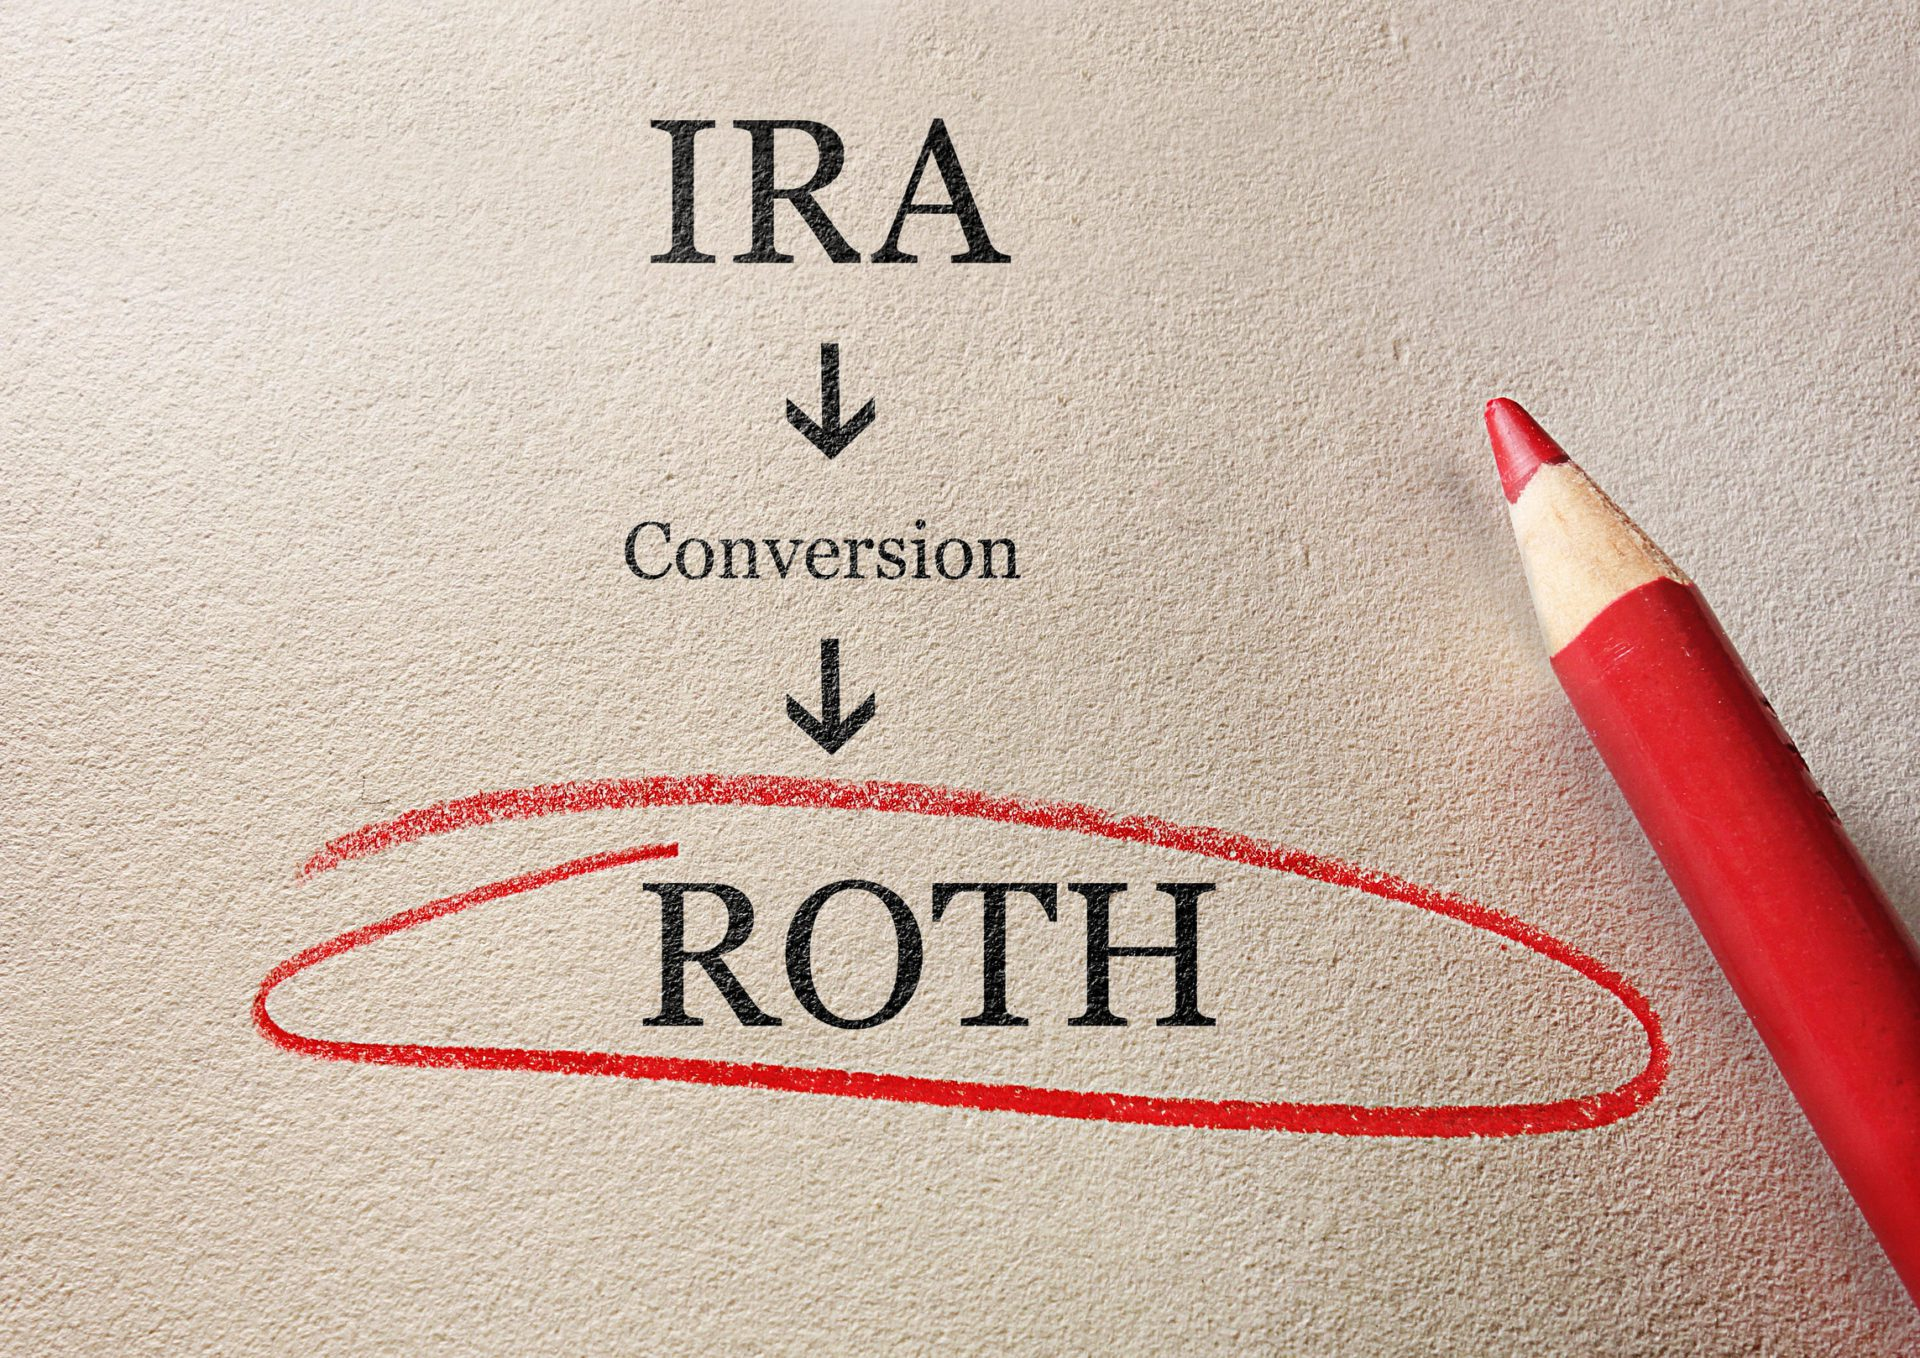 roth ira conversion image of pencil on paper